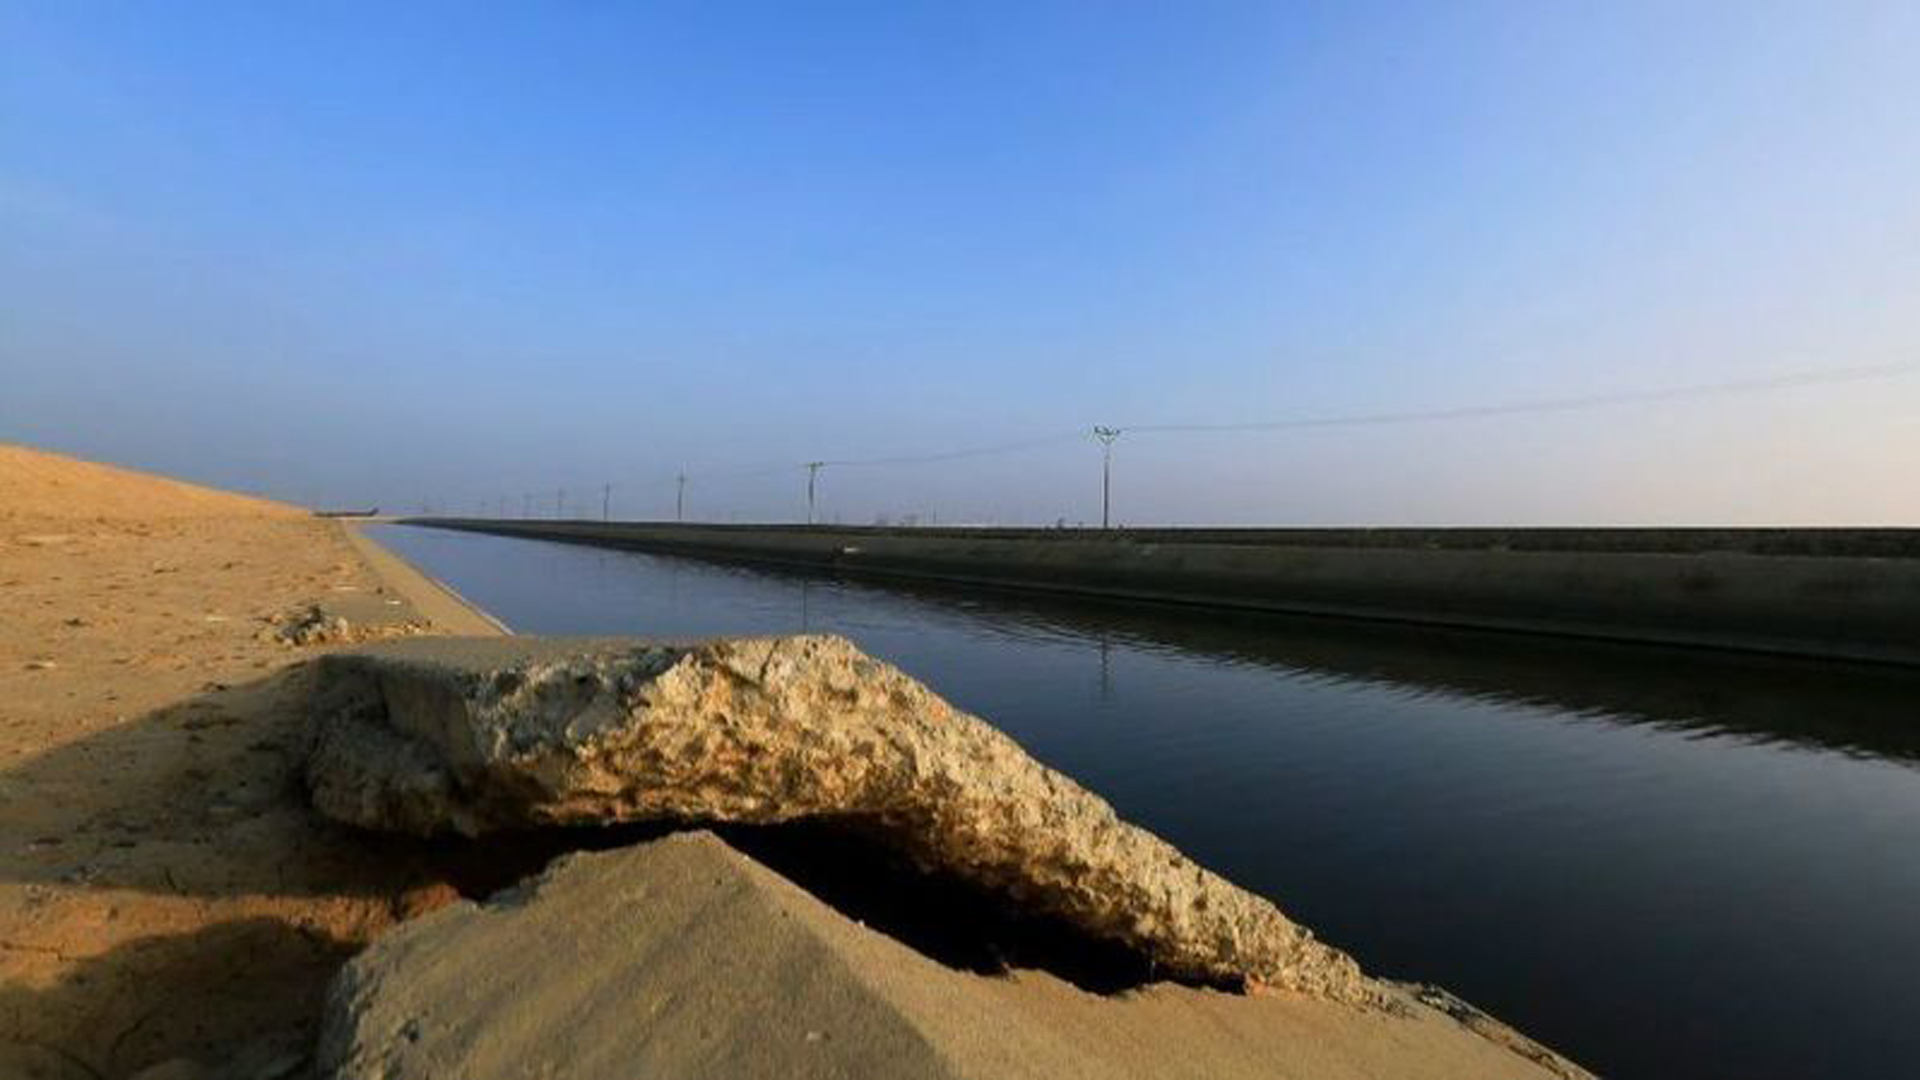 Buckled concrete sits along the Delta Mendota Canal on Jan. 13, 2015, near Los Banos. The ground is sinking due to overpumping groundwater in the San Joaquin Valley. (Credit: Brian van der Brug / Los Angeles Times)